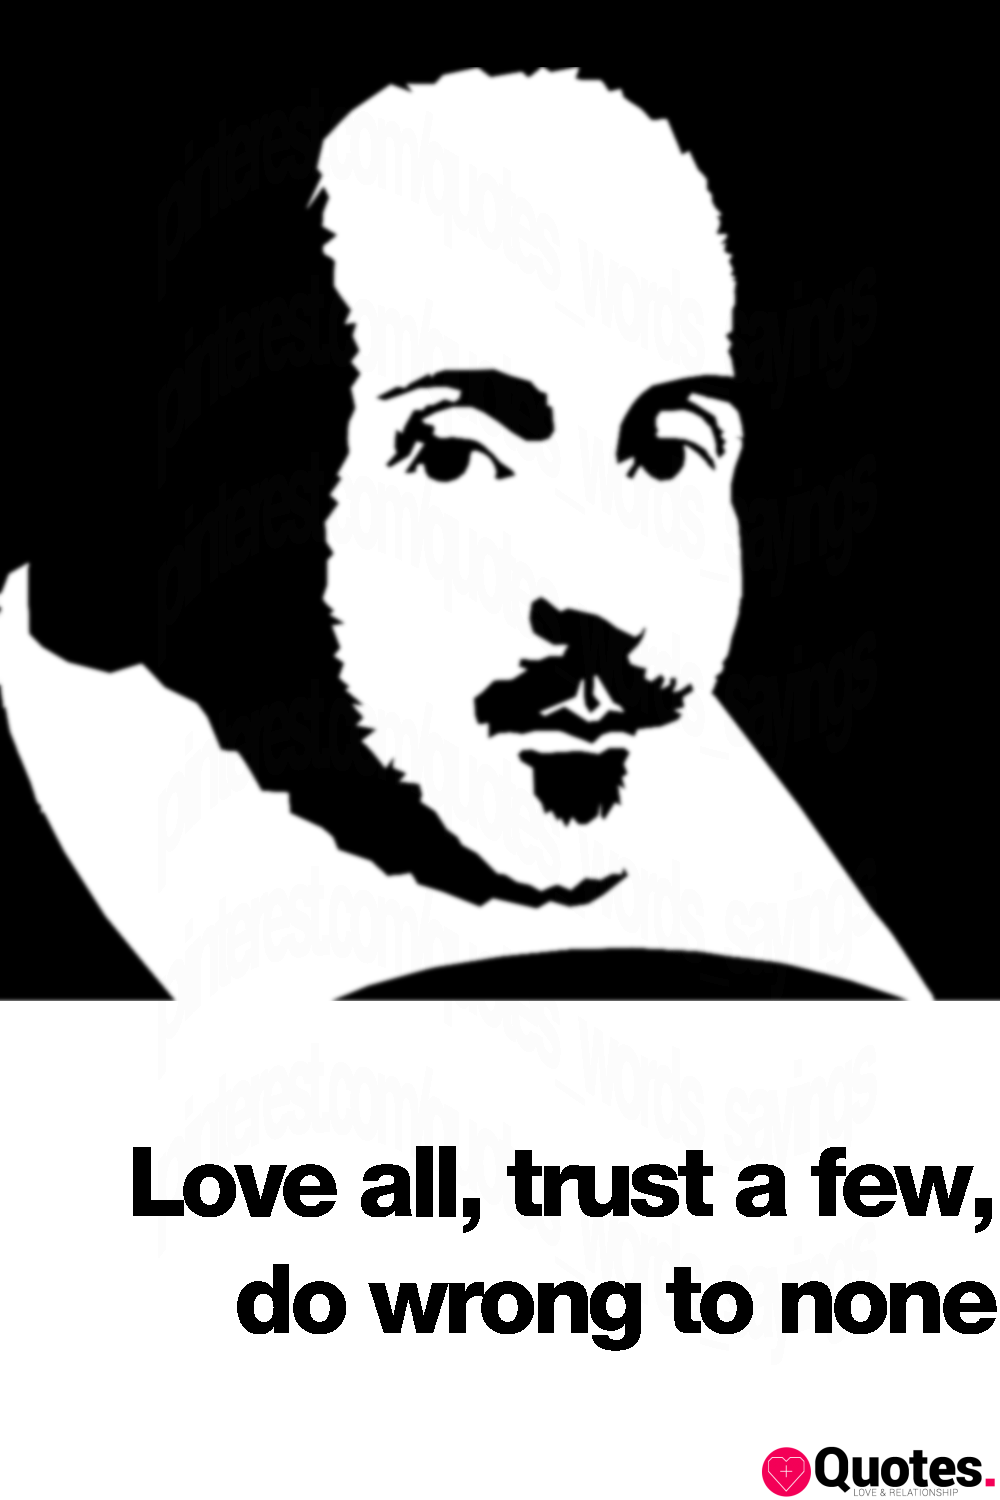 Love quotes sayings trust and No Trust